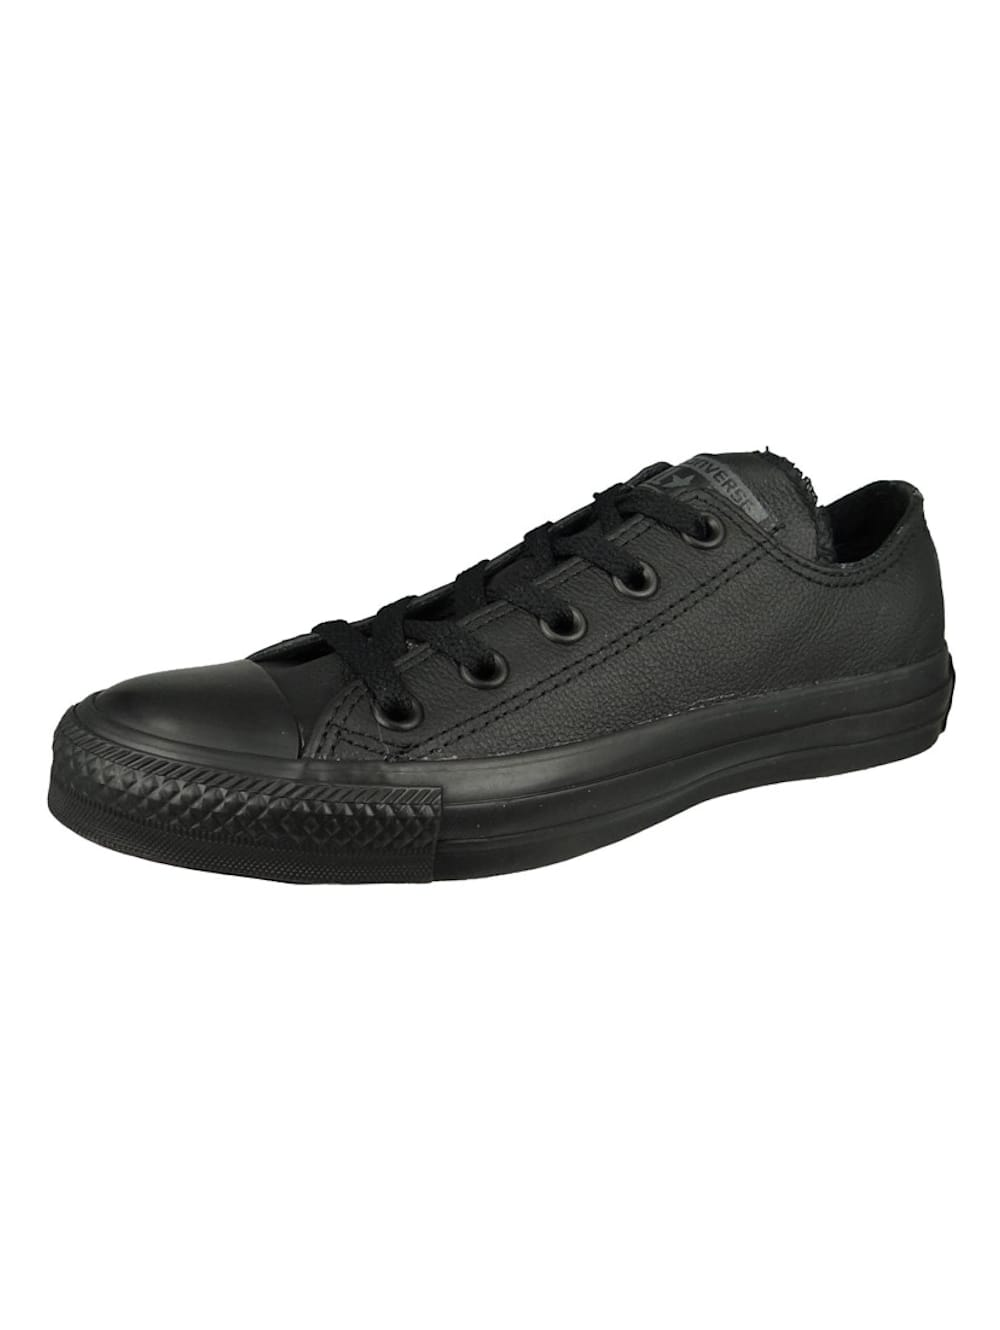 Converse sneaker Chucks 135253C AS OX Black Monochrome Leder